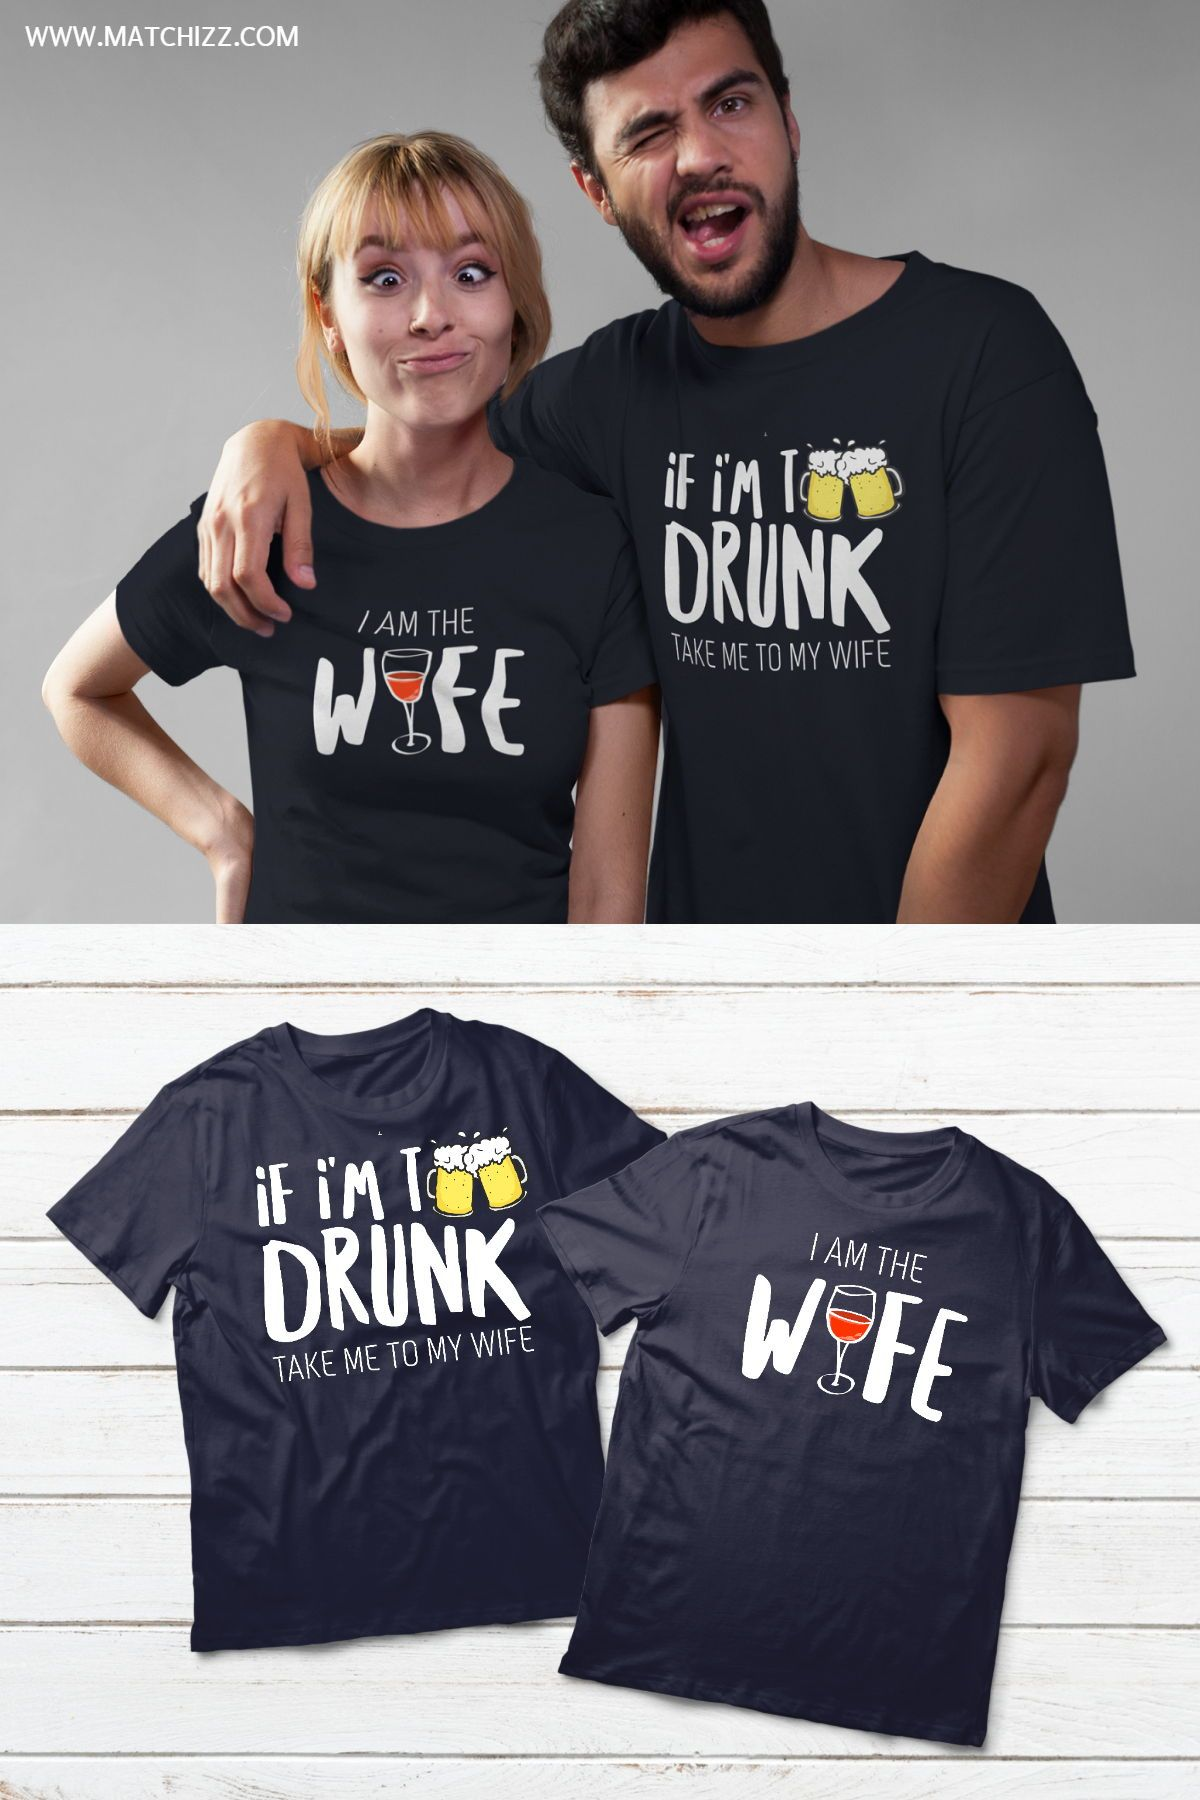 Couples Shirts Drinking Matching Outfits For Husband And Wife Matching Couple Shirts Couple Shirts Funny Couple Shirts